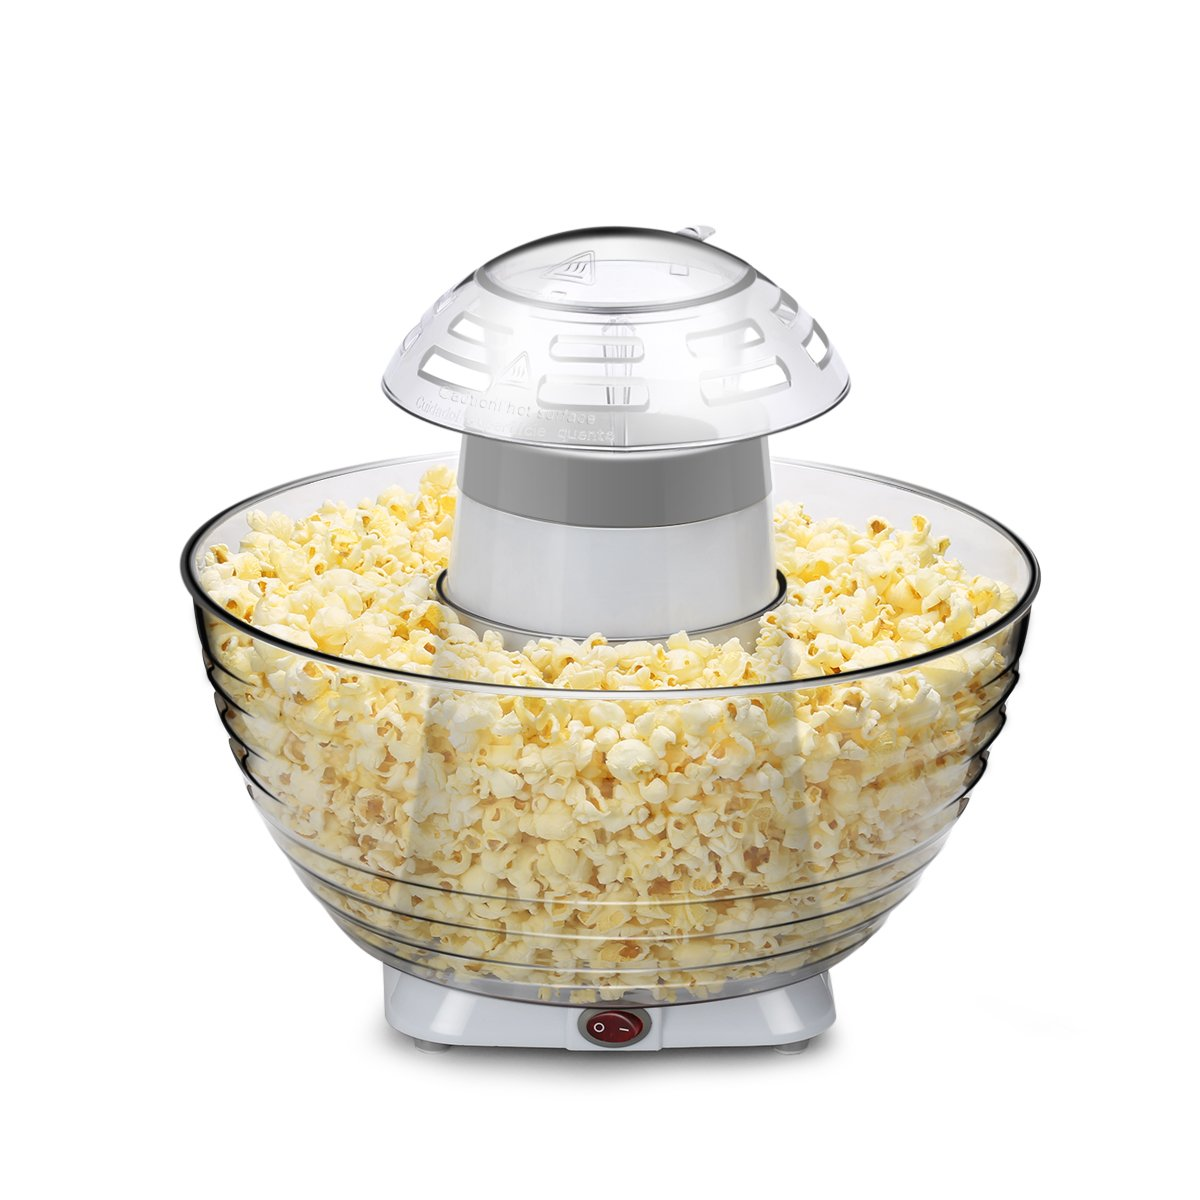 Excelvan Homemade Air-pop Popcorn Maker with Quick and Safe Operation, Popper Corn Machine with Removable Plus Bowl Suitable for Families Enjoyment, Party (White)